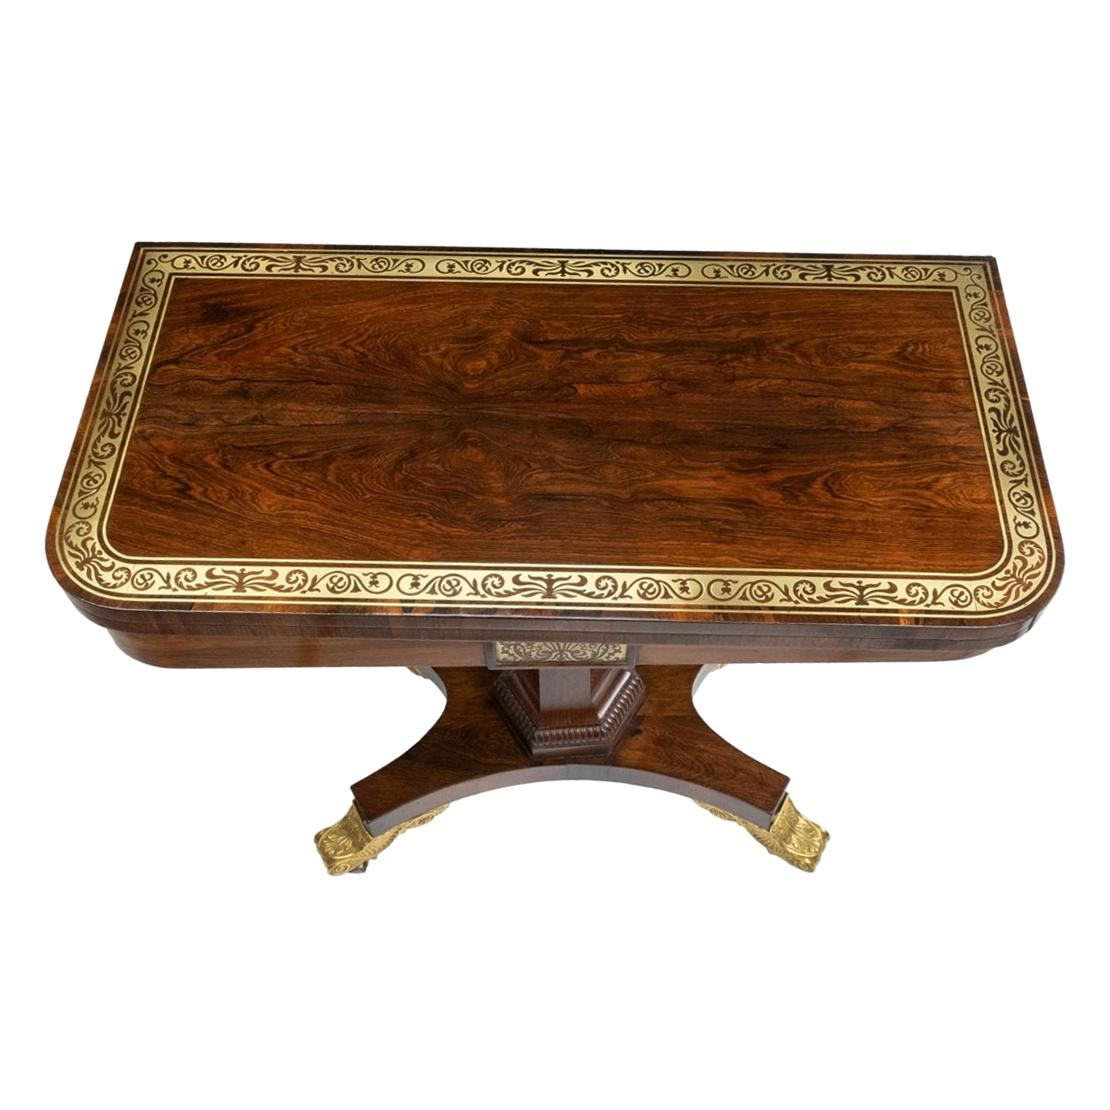 Georgian Rosewood Fold-Over Card Table Attributed to Gillows